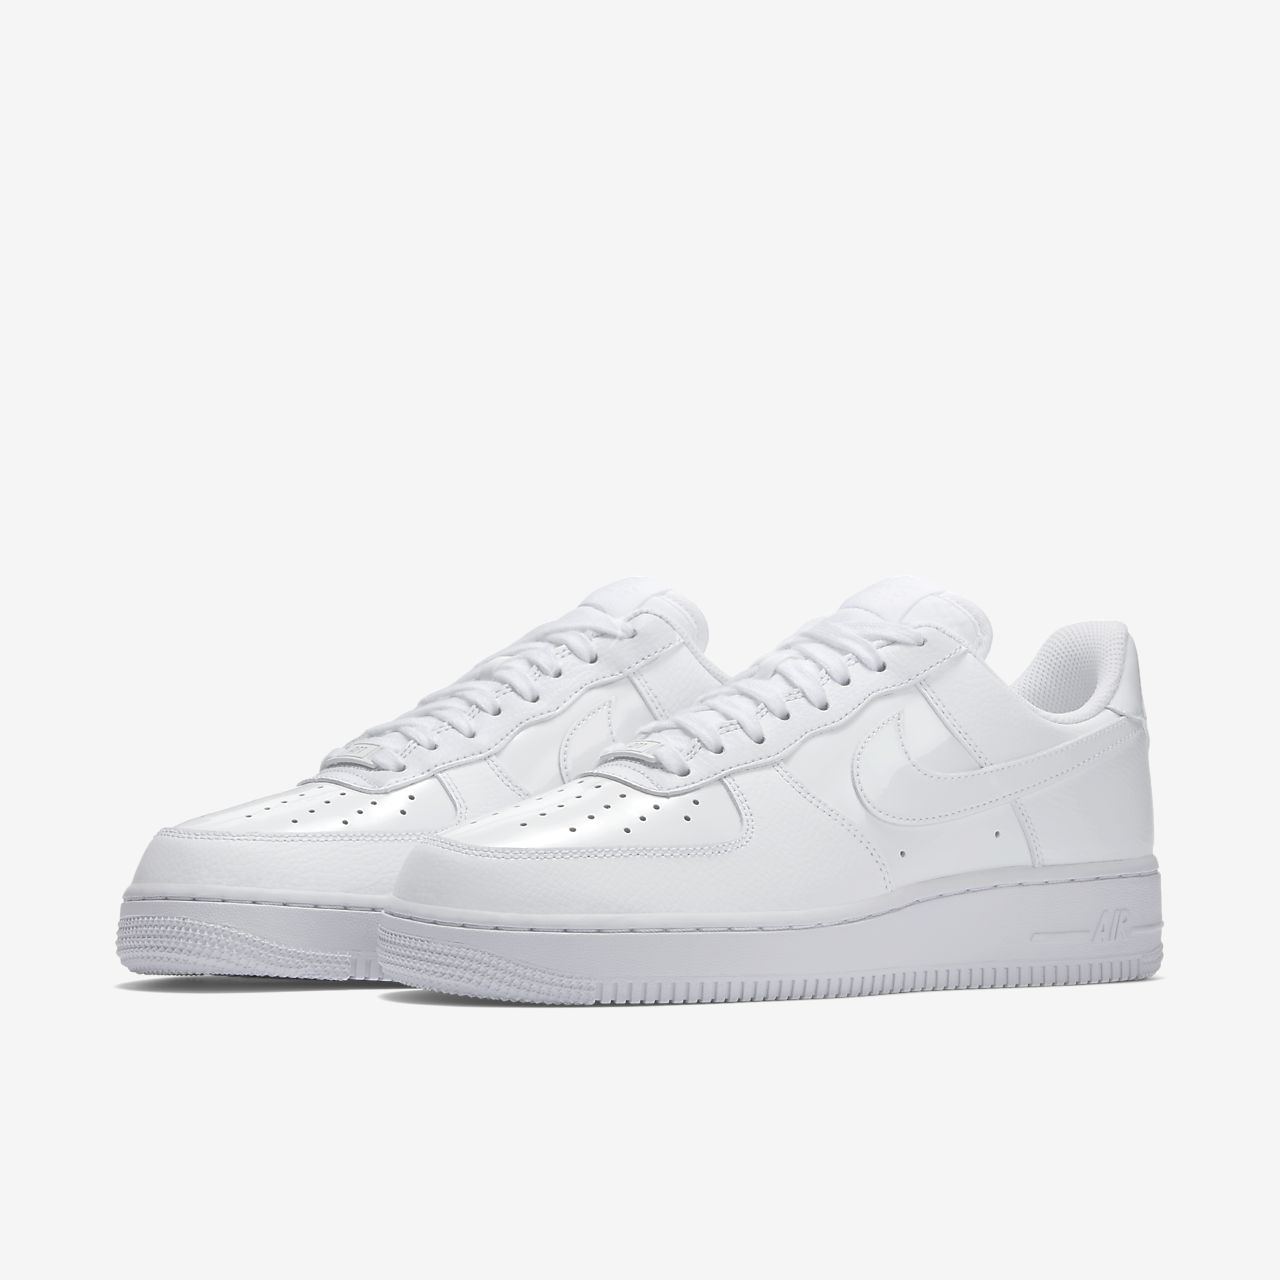 nike air force 1 '07 sneakers in white patent